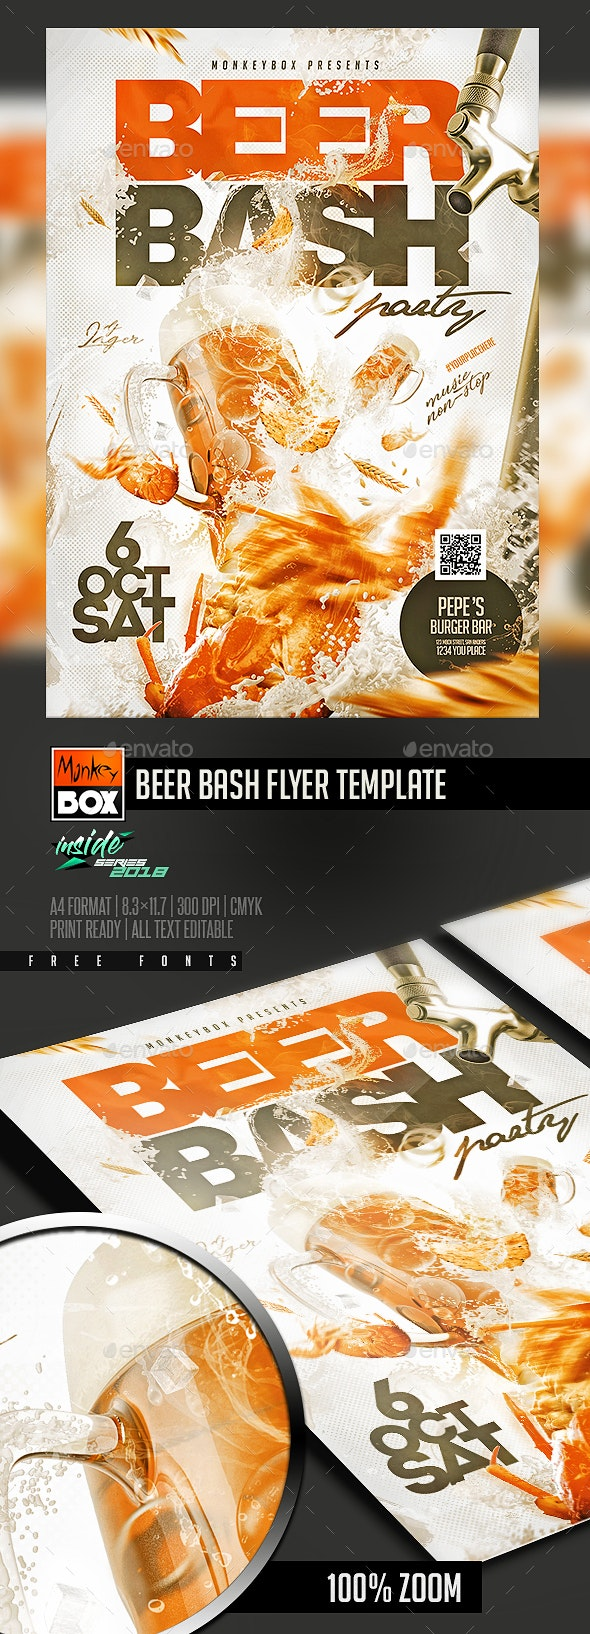 Beer Bash Flyer Template - Flyers Print Templates